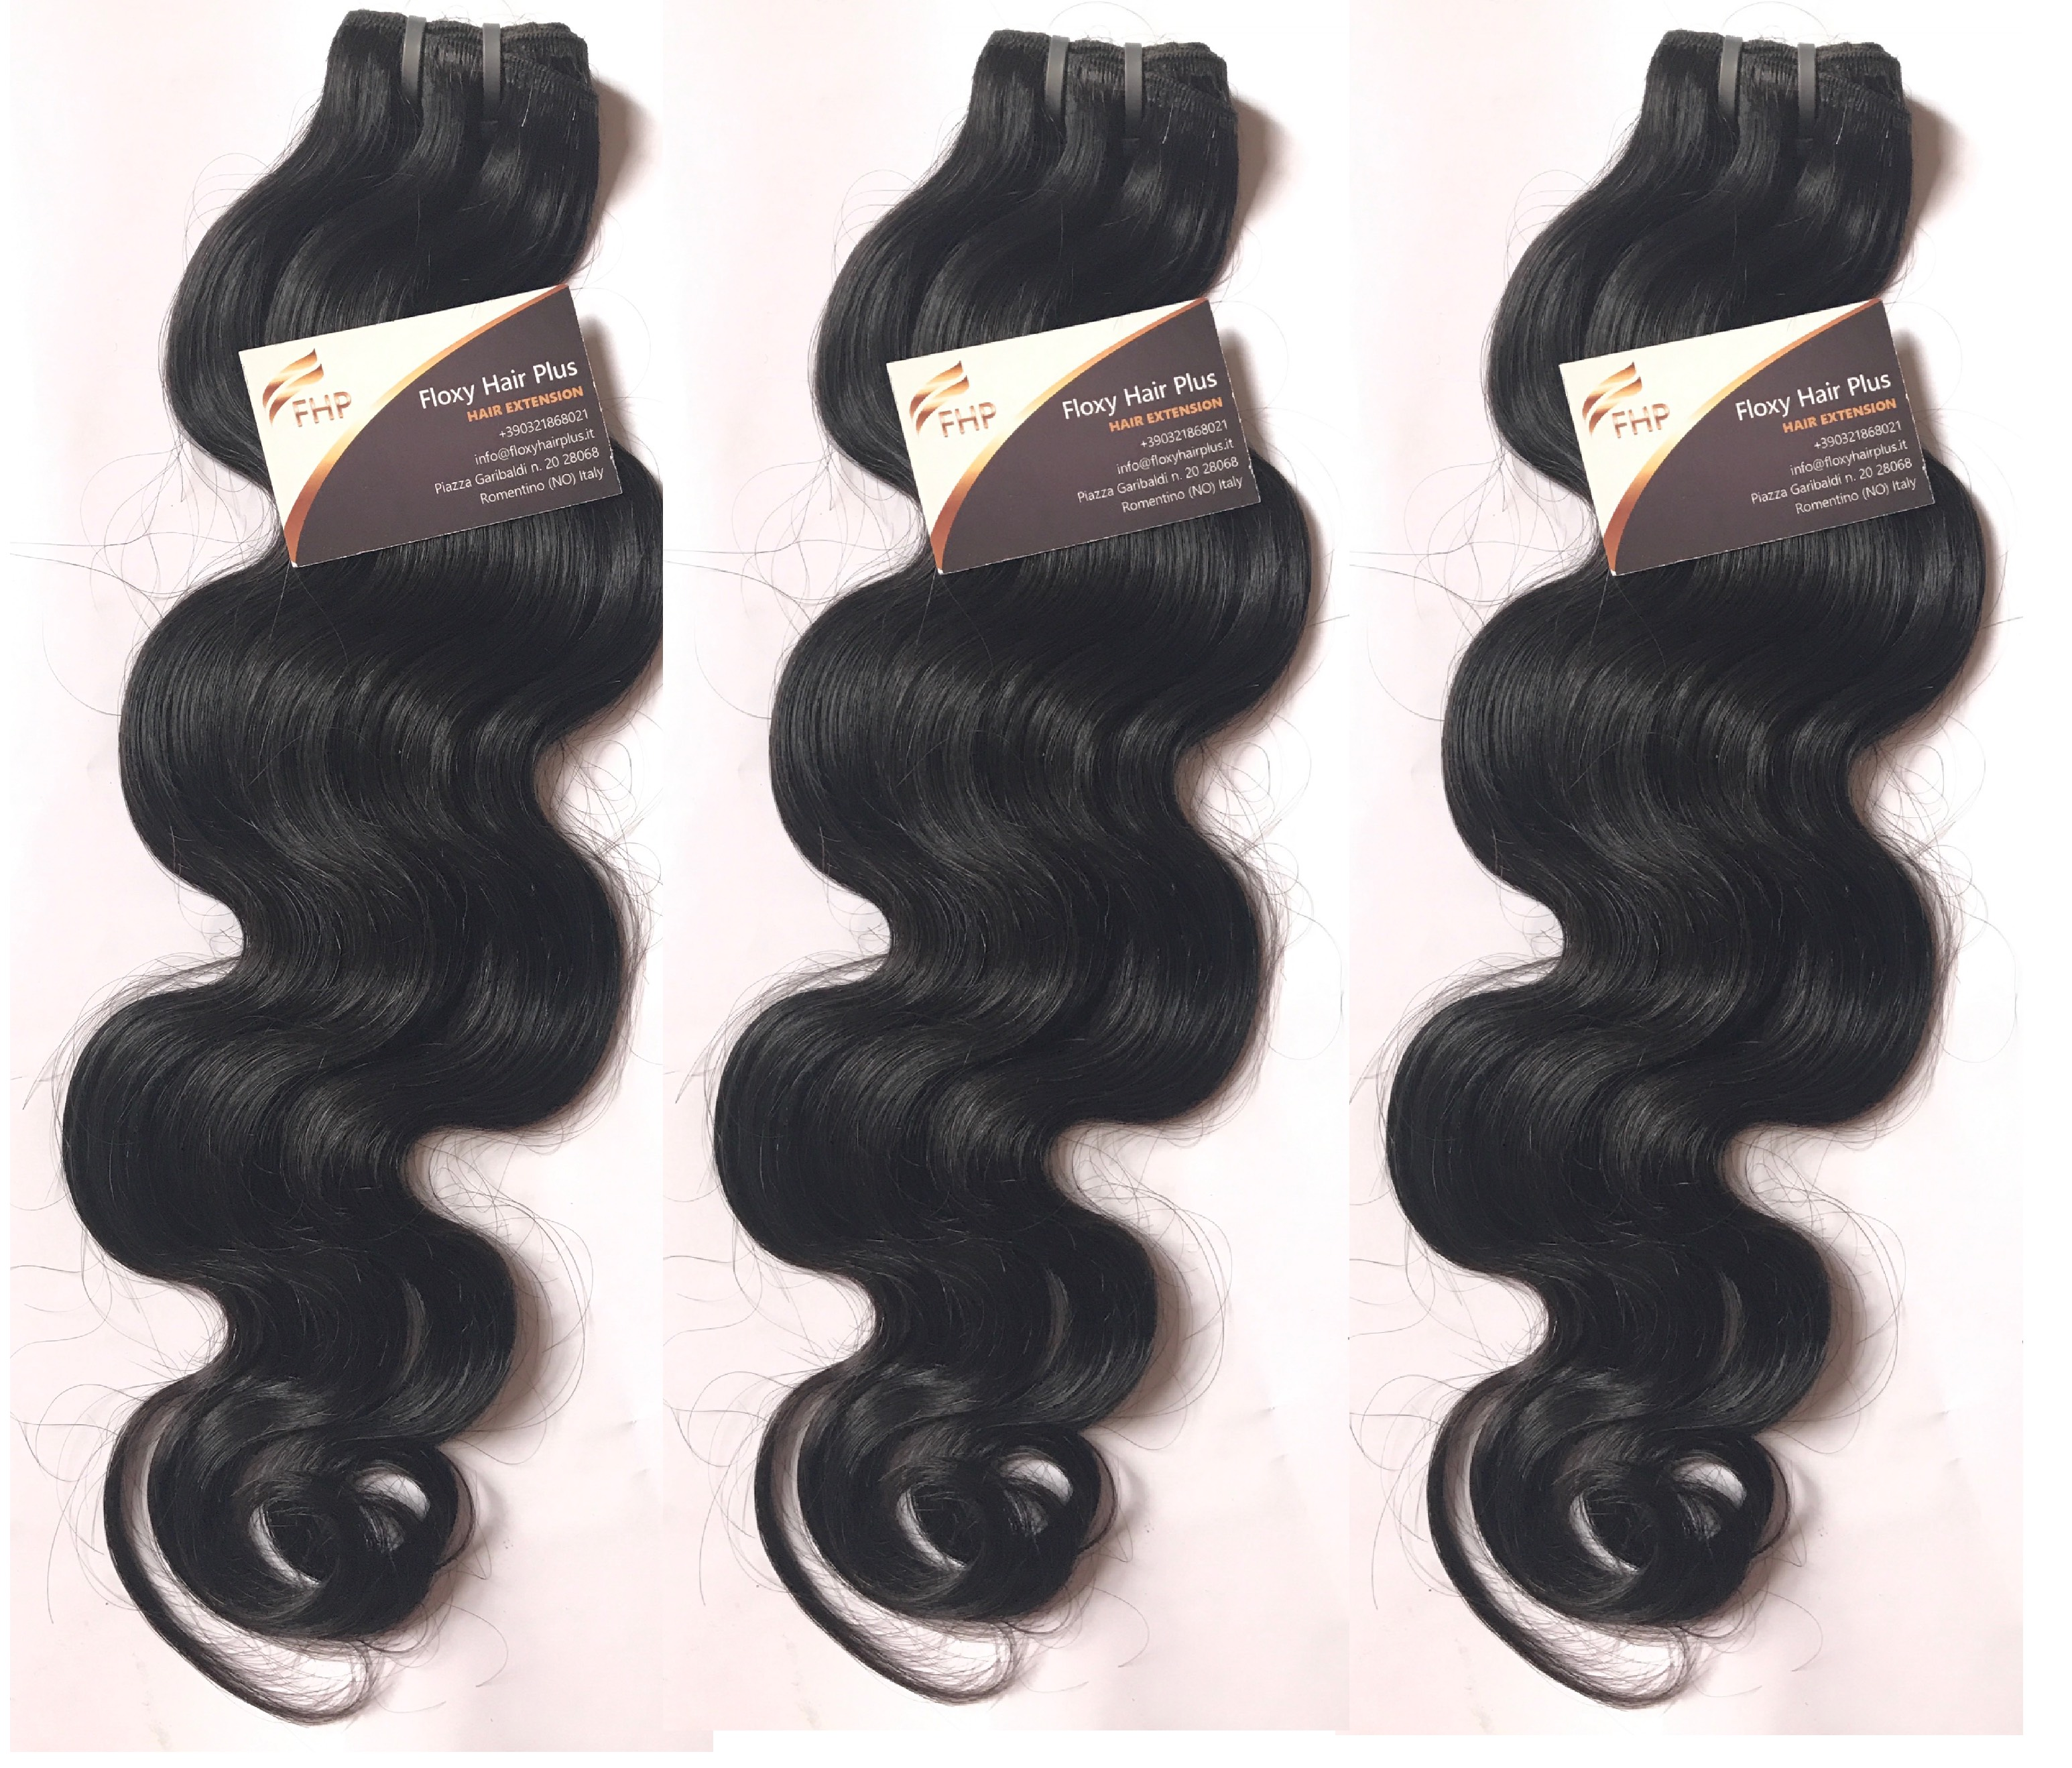 Steamed Body Wave 23 Or 4 Bundle Deals With Or Without Closures